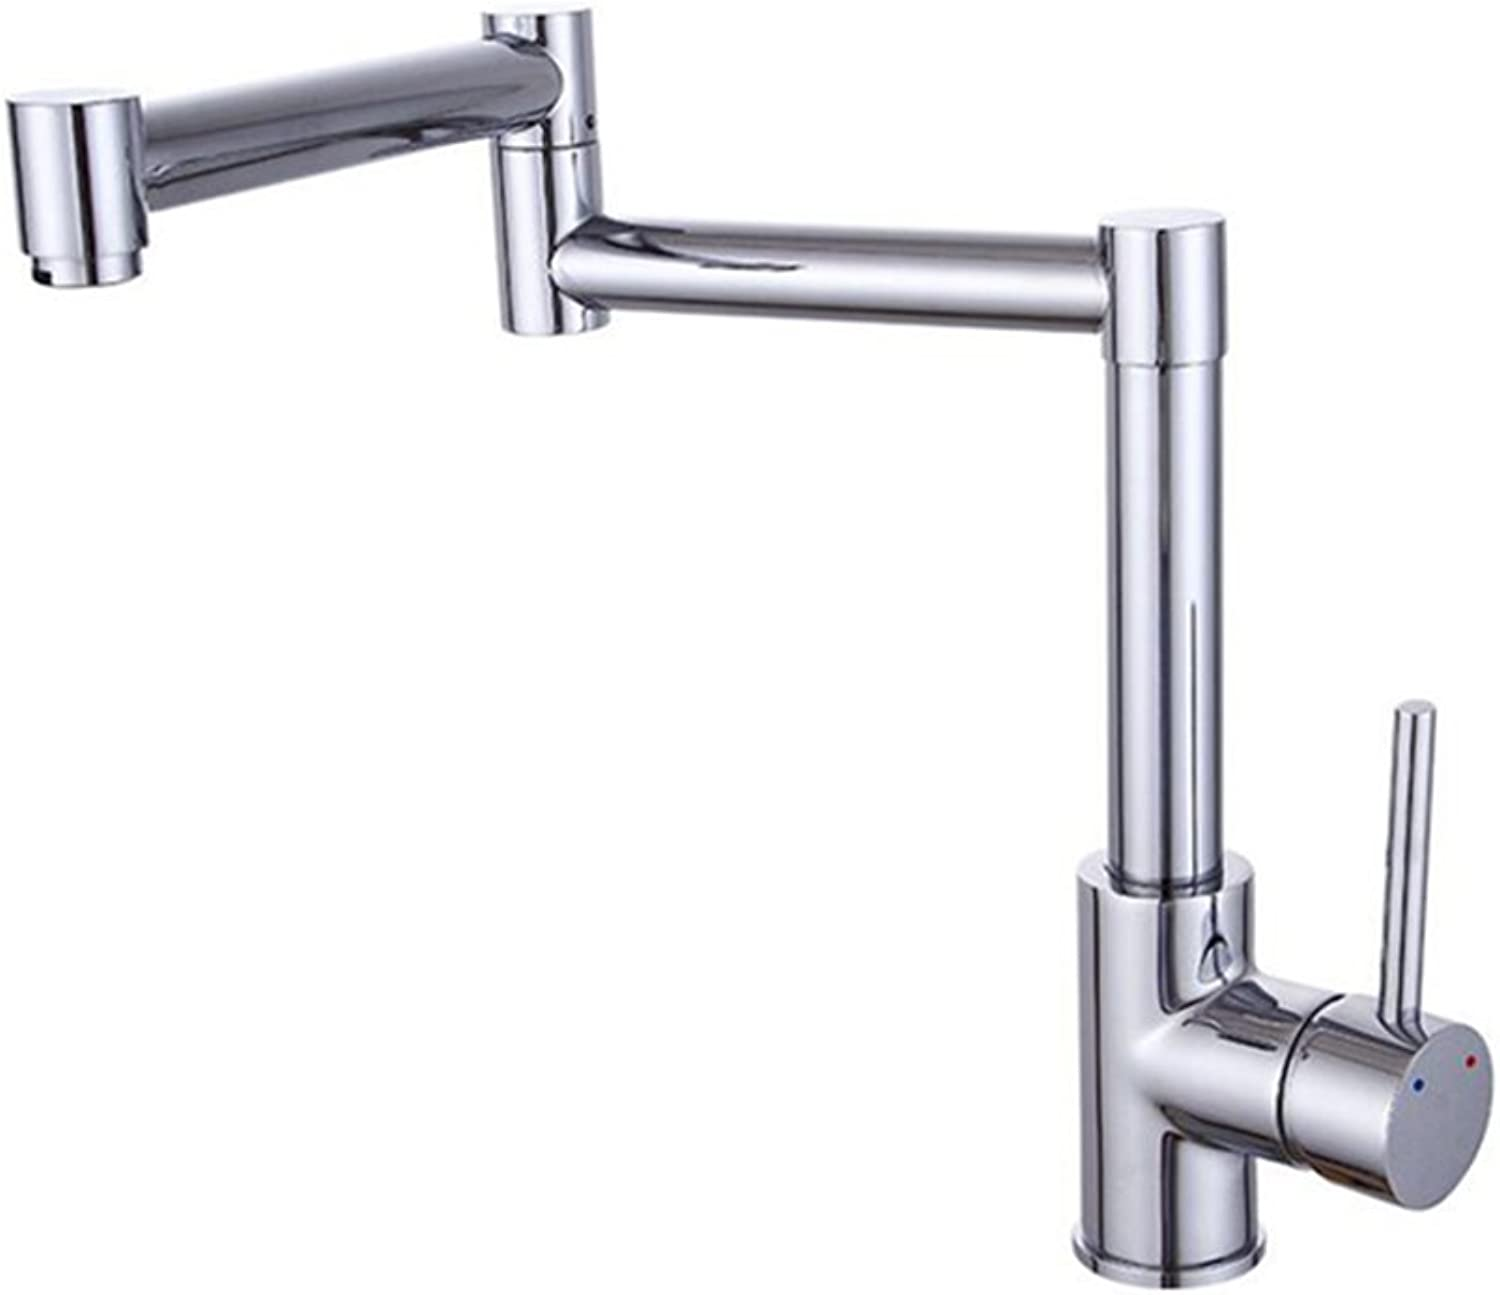 Modern Single Lever Universal Kitchen Mixer Taps Brass Kitchen Sink Basin Mixer Faucet Kitchen Sink Tap,Kitchen Faucet